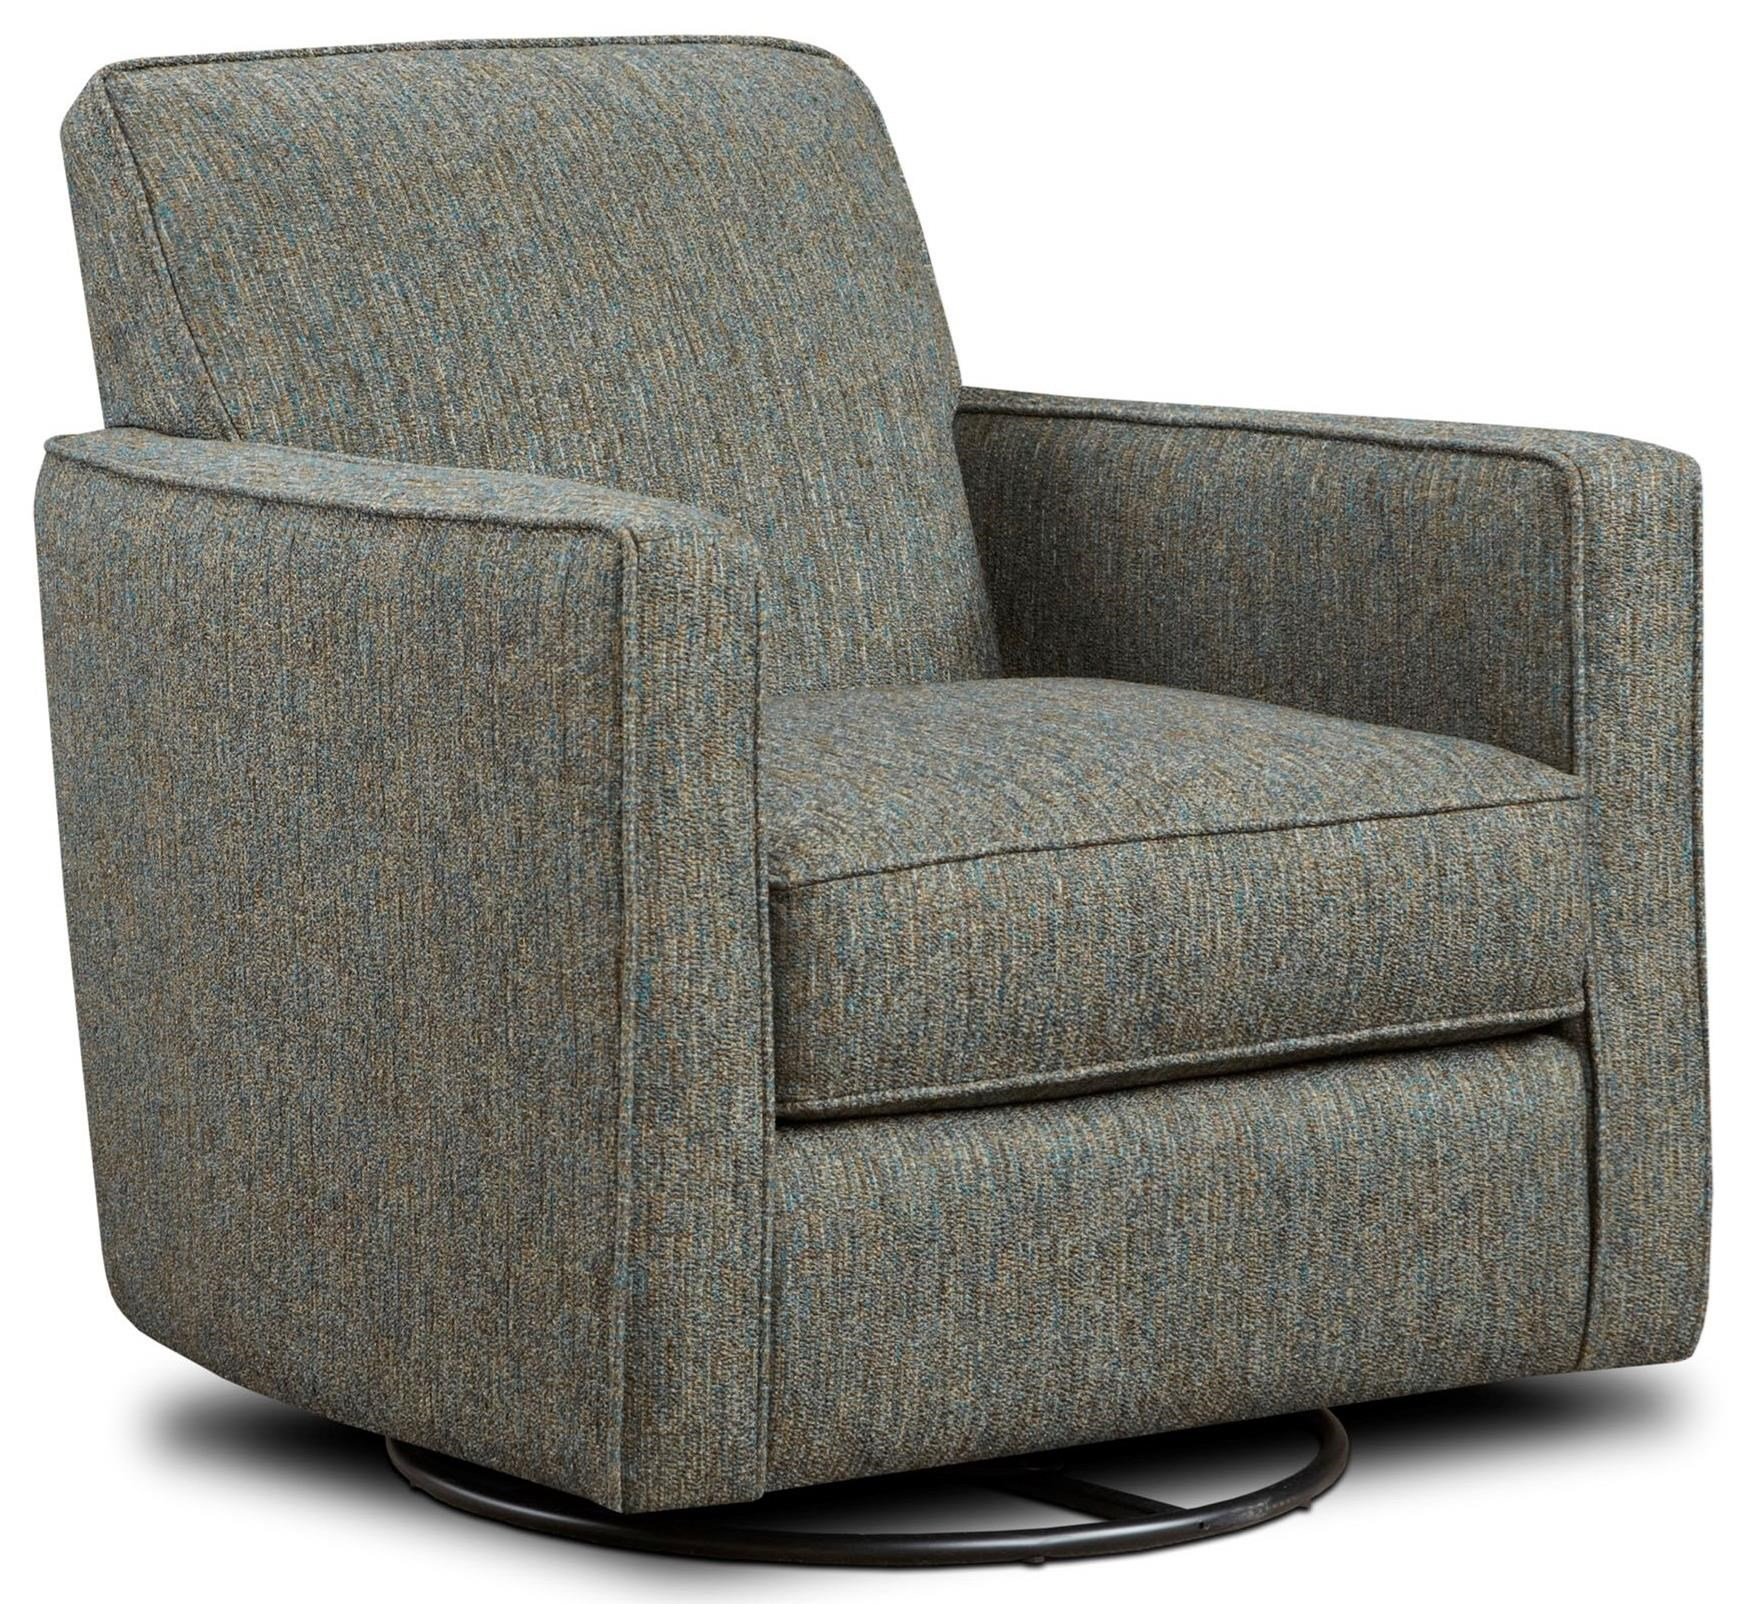 Upholstered Glider Chair Fusion Furniture 402 G Contemporary Swivel Glider With